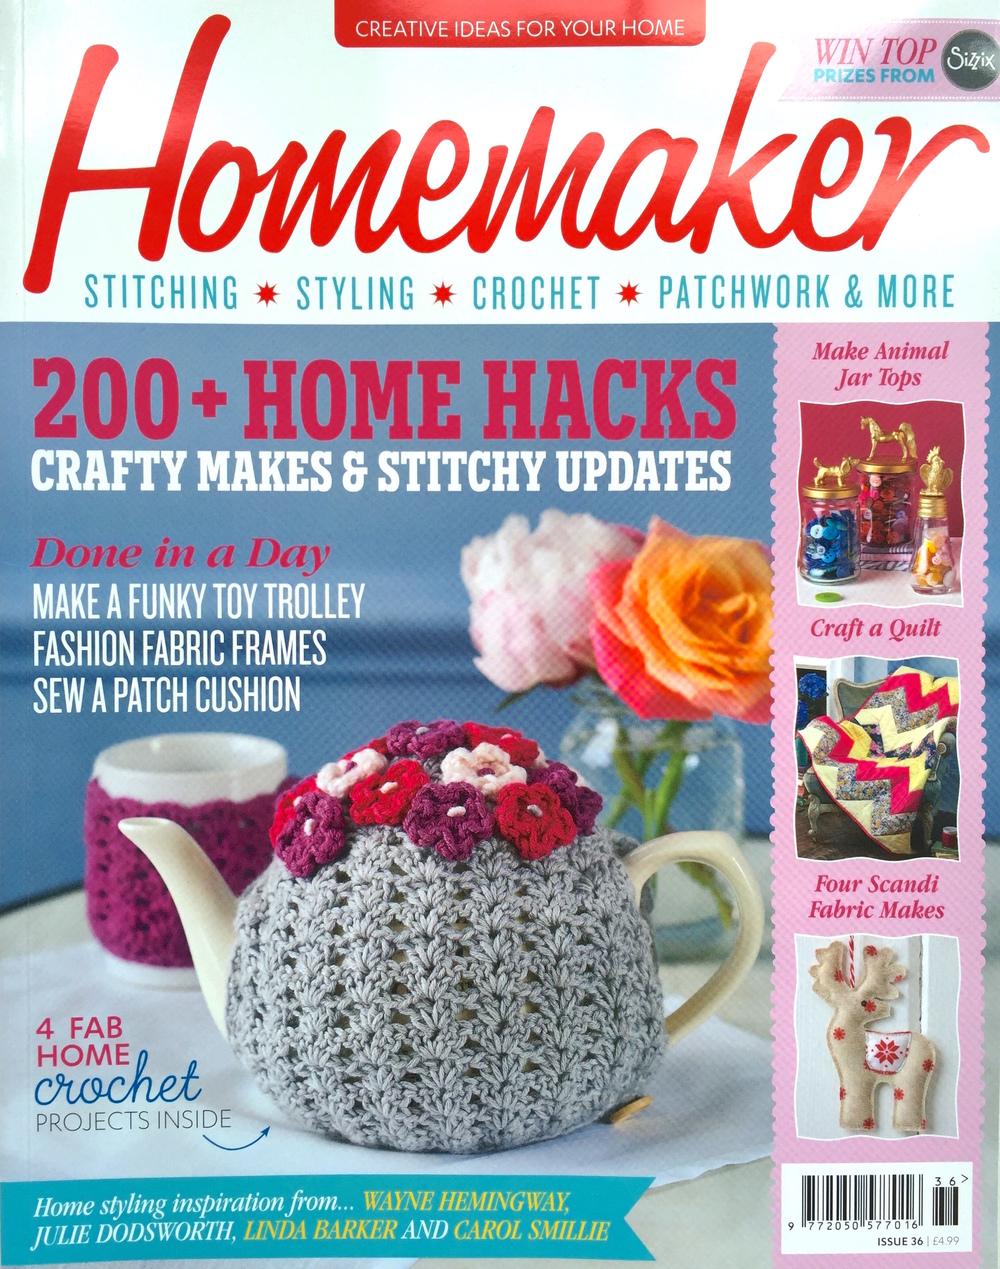 September 2015 - Homemaker Magazine - Issue 36. Featured as Website of the Month